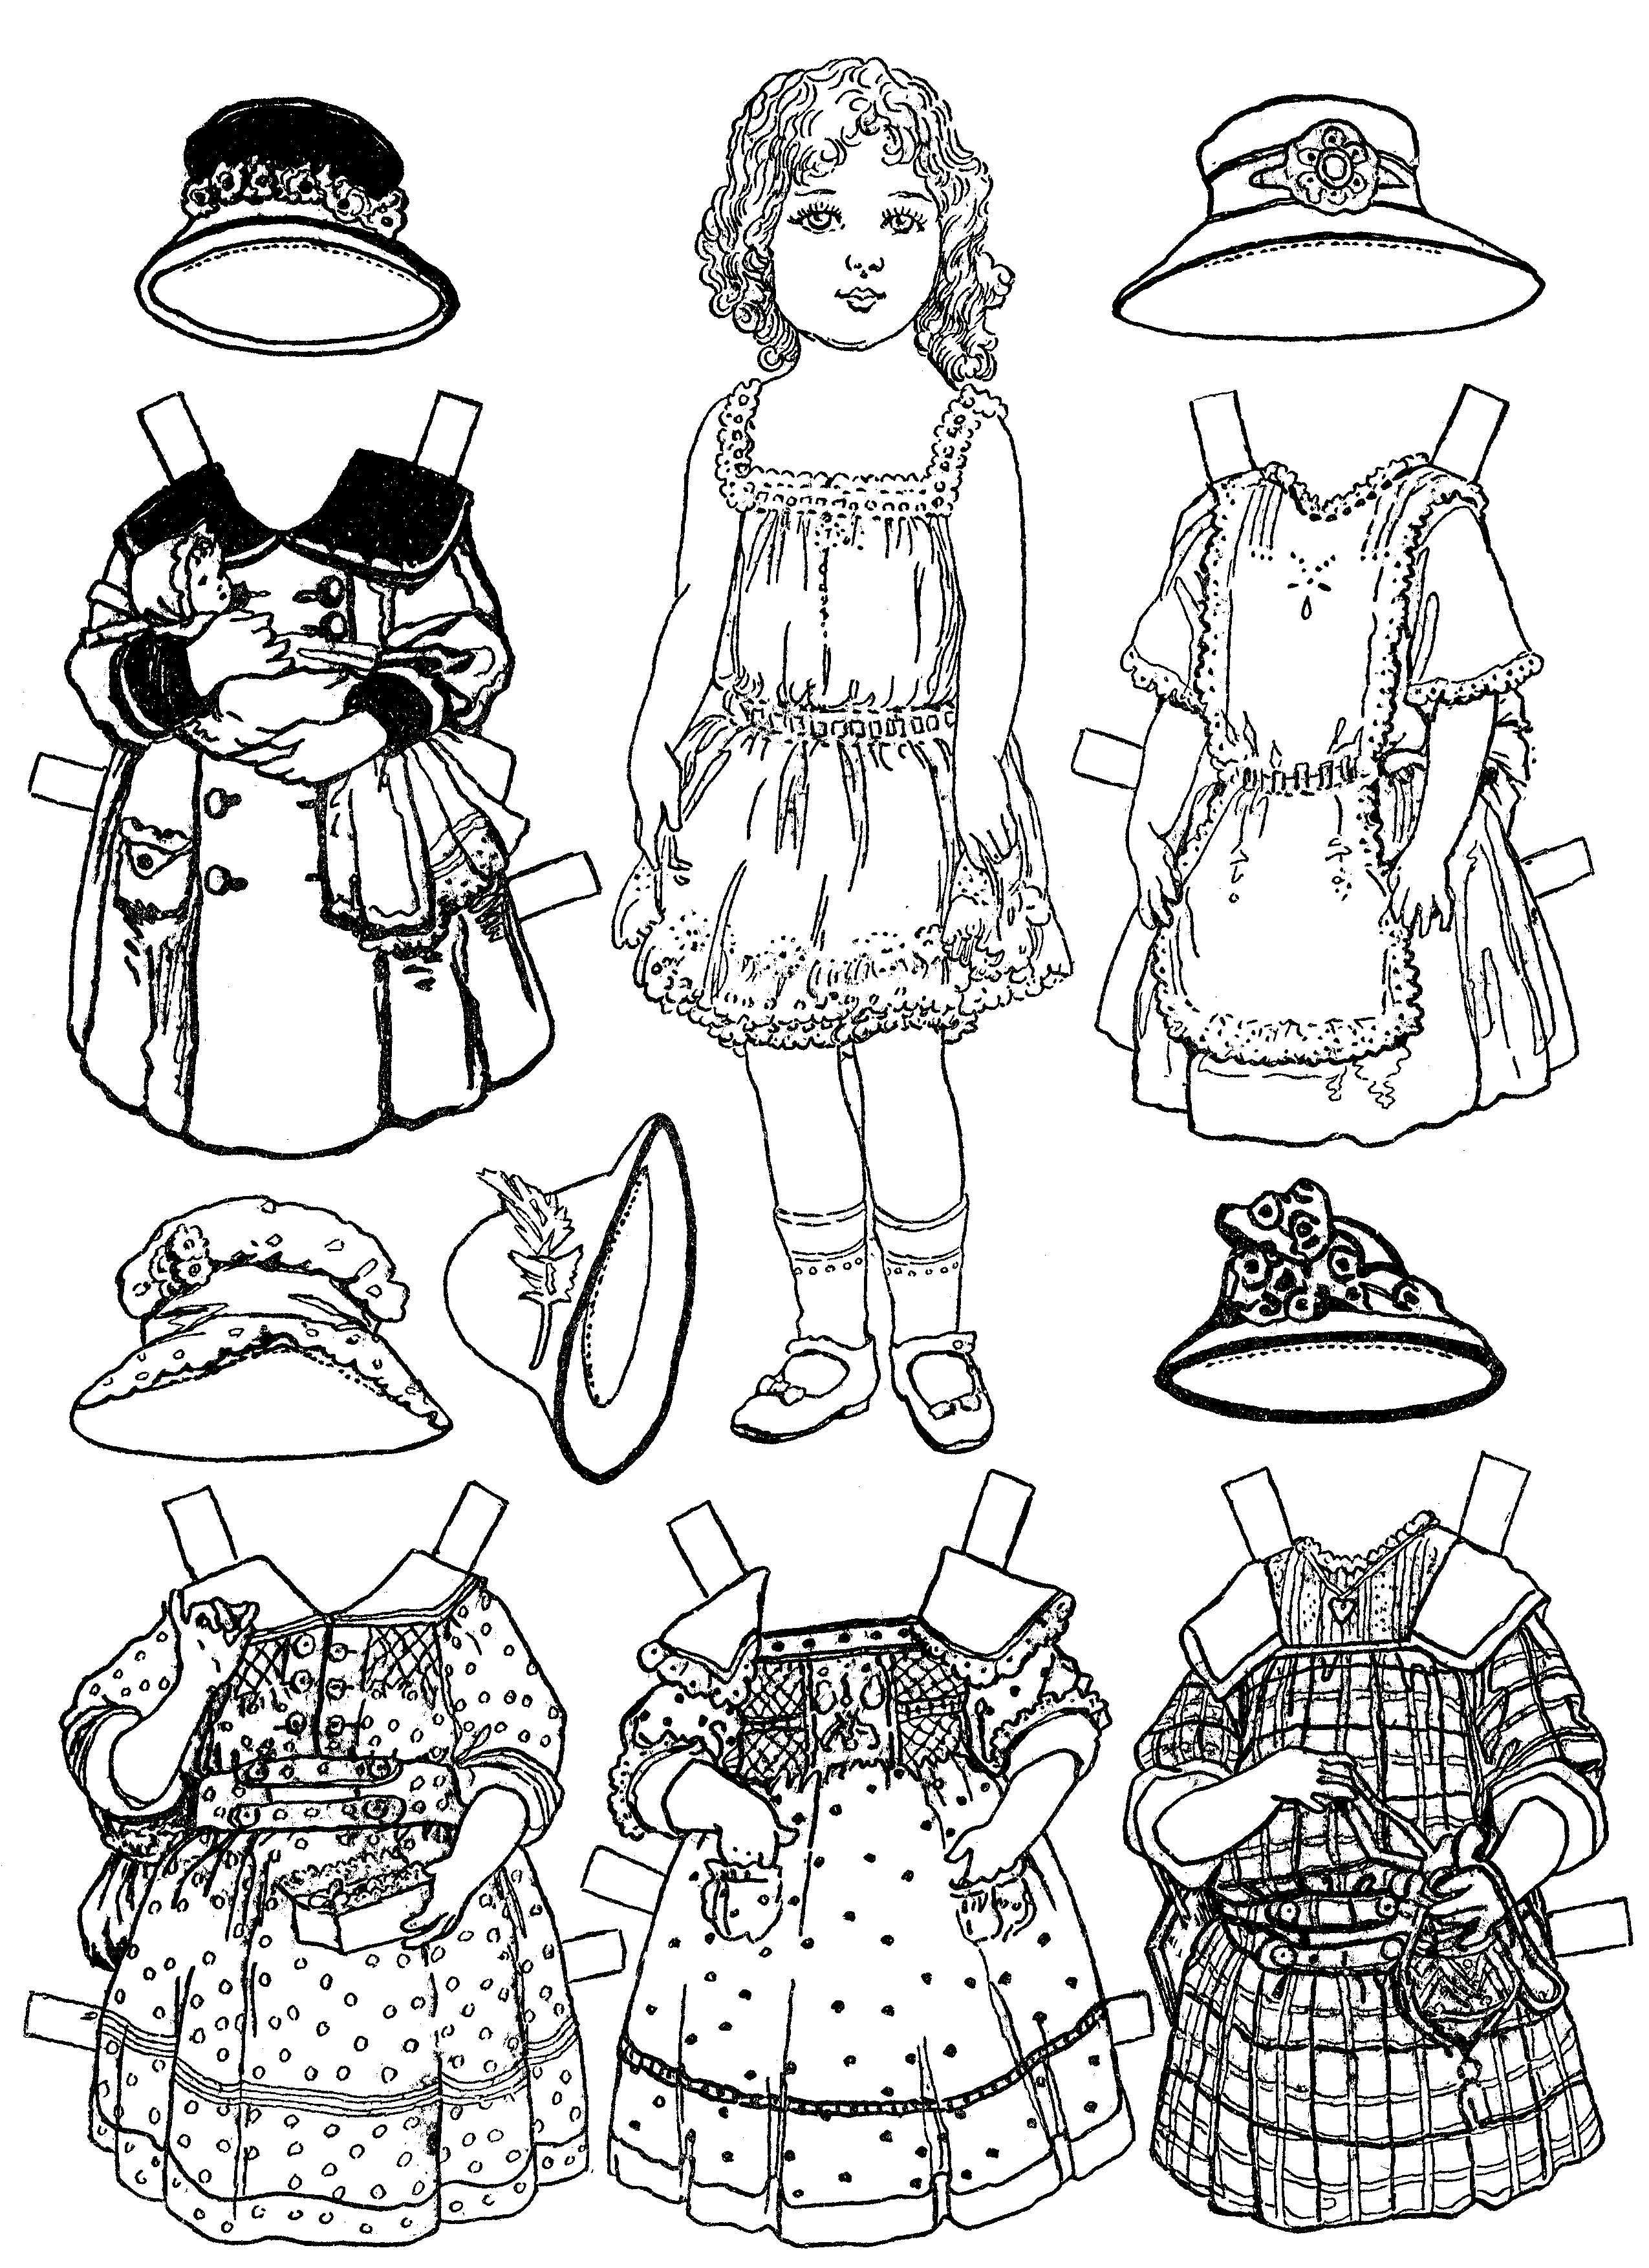 Free Printable Paper Doll Coloring Pages For Kids | Paper Dolls - Free Printable Paper Doll Coloring Pages